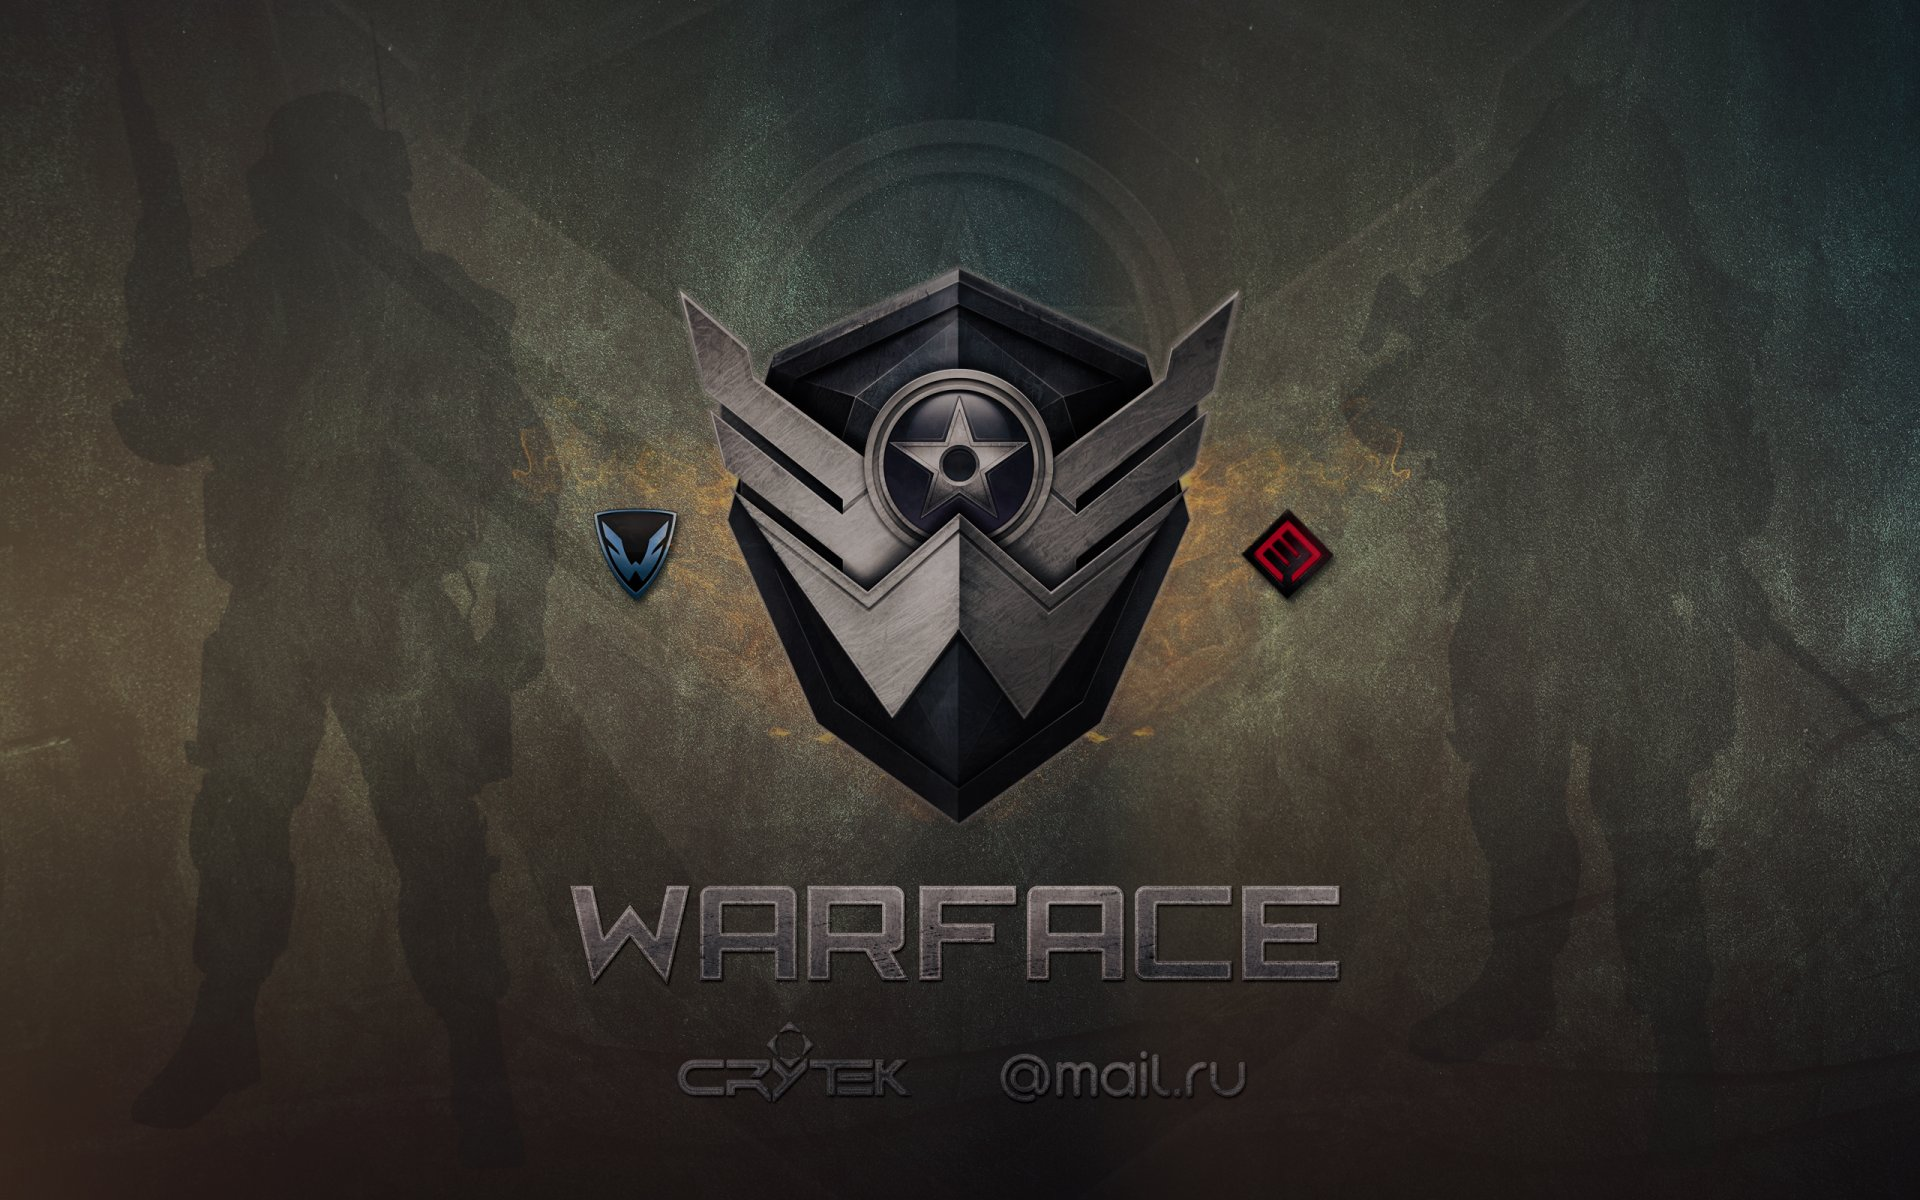 wf warface mail.ru